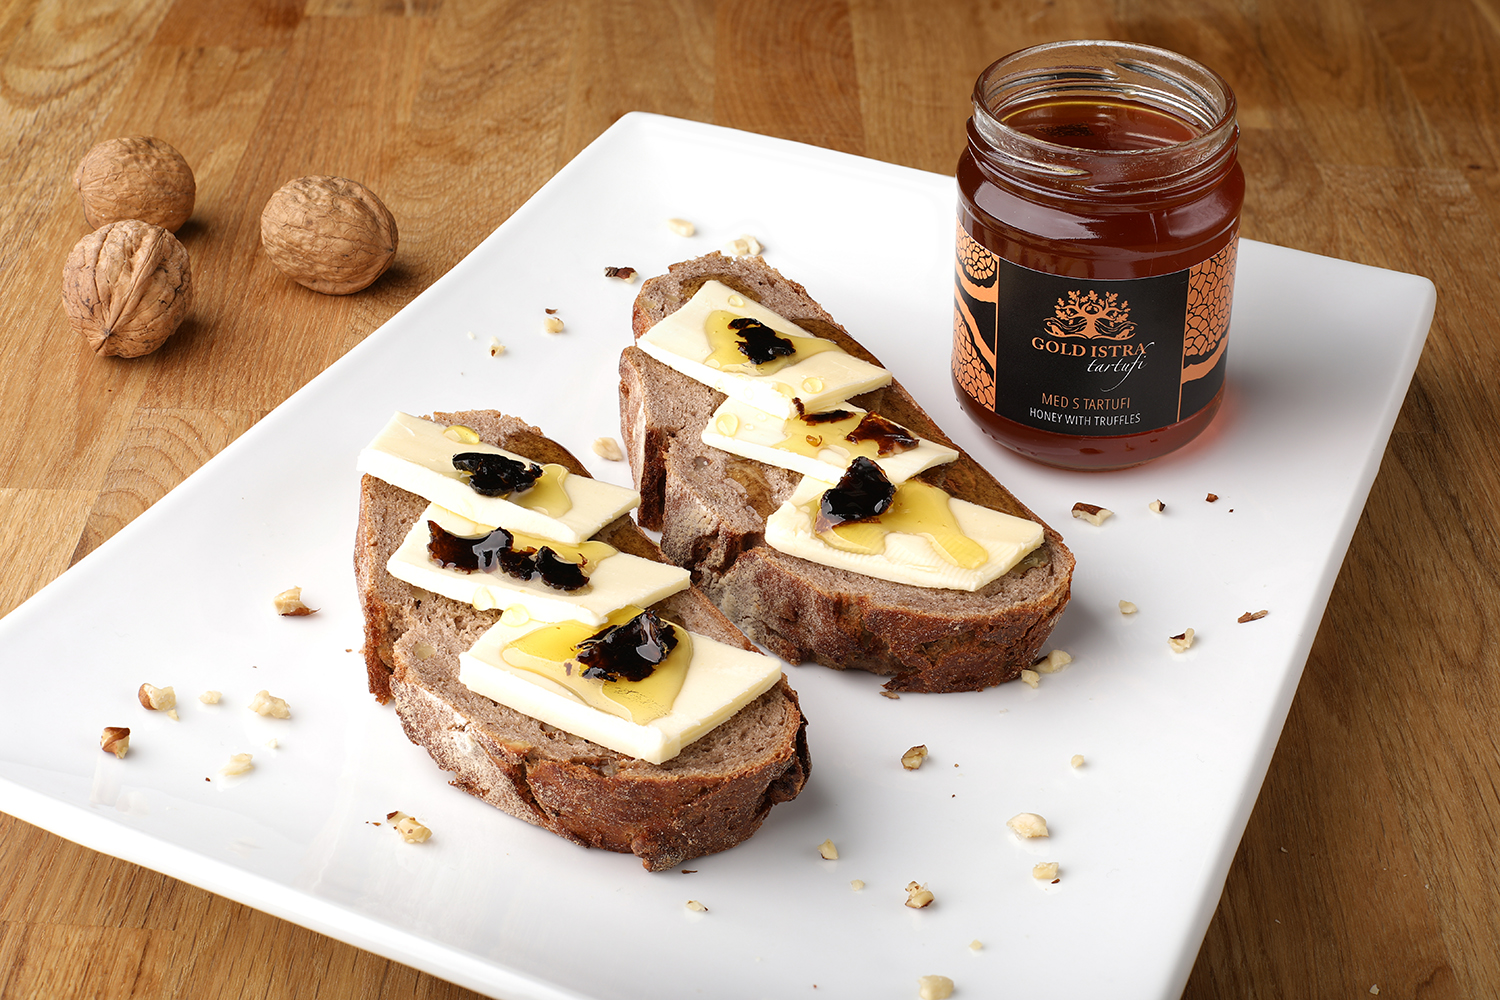 honey with pieaces of white truffles by goldistra